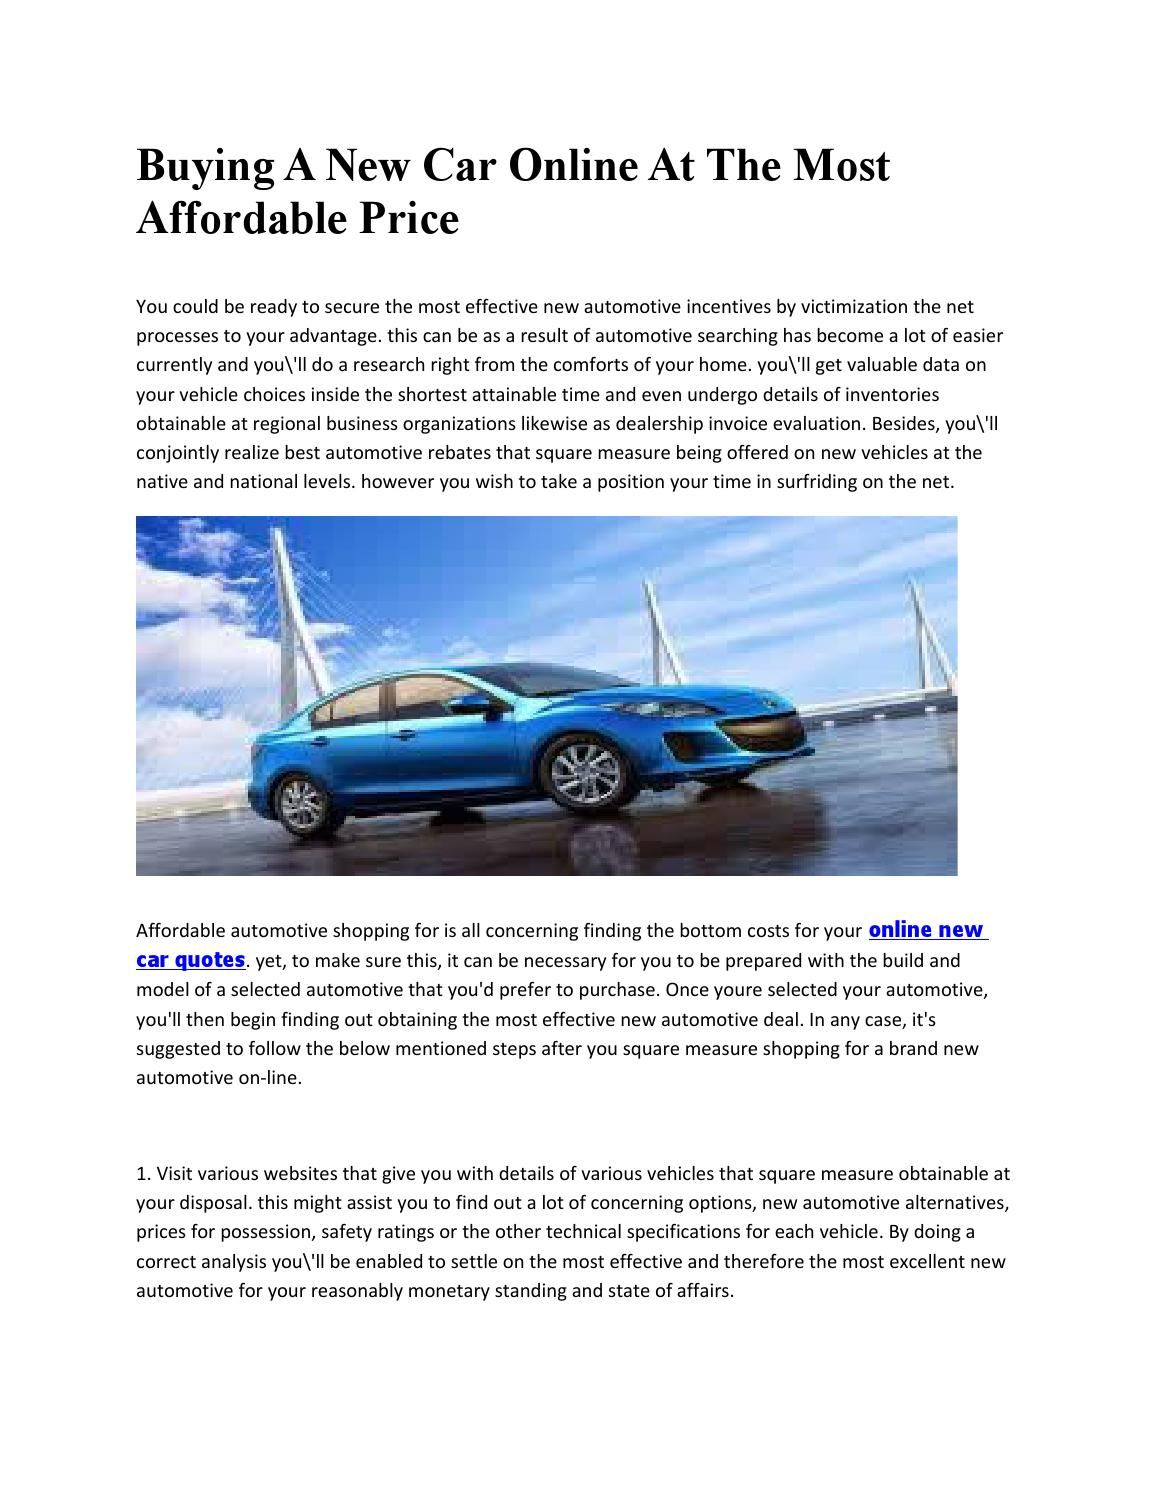 Buying A New Car Online At The Most Affordable Price New Cars Dream Cars Car